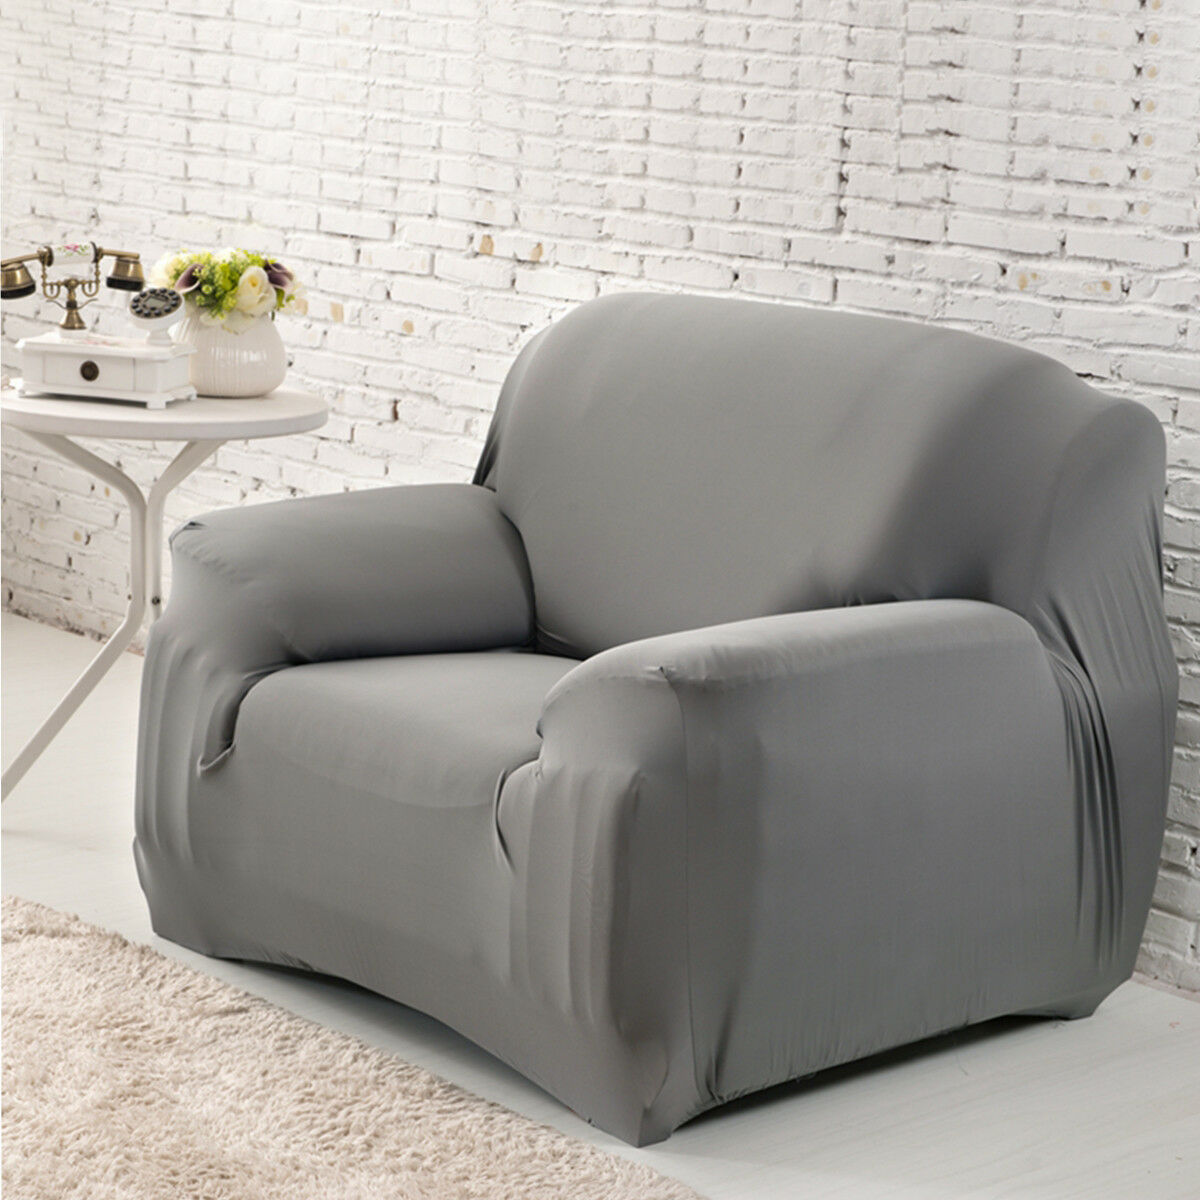 EASY-Stretch-Couch-Sofa-Lounge-Covers-Recliner-1-2-3-Seater-Dining-Chair-Cover thumbnail 76